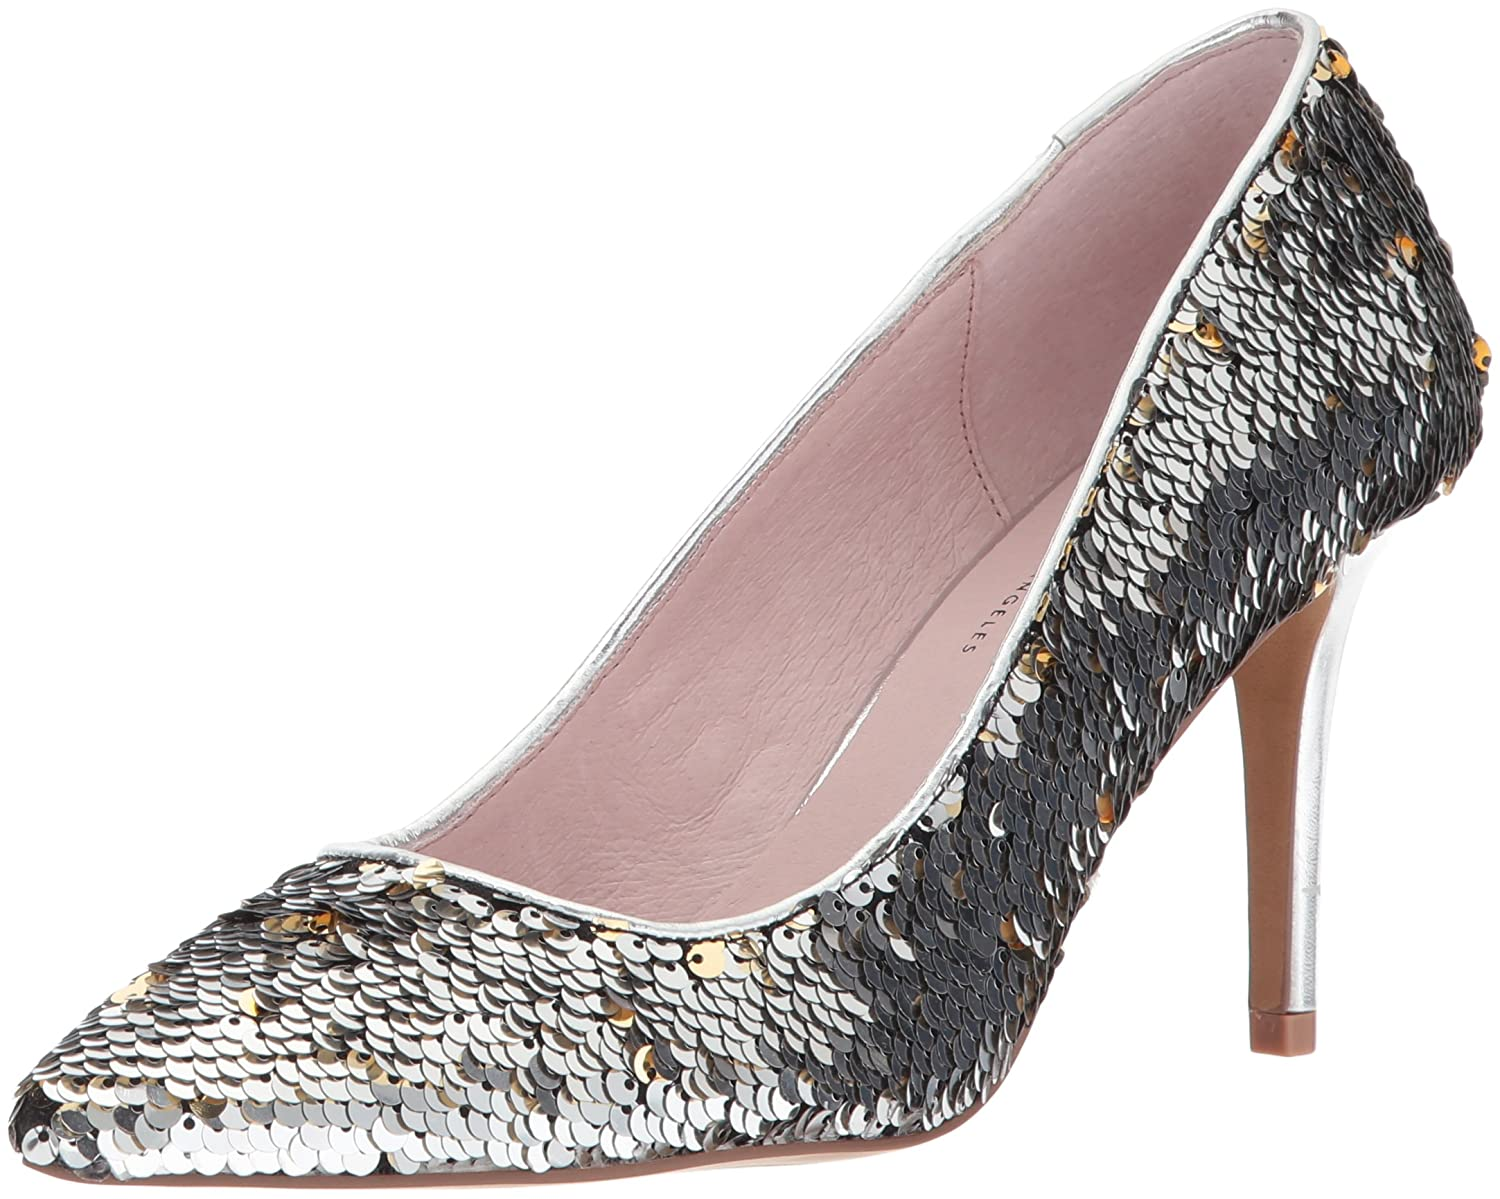 Women's Ruthy Silver Sequin High-Heel Leather Dress Pumps - DeluxeAdultCostumes.com